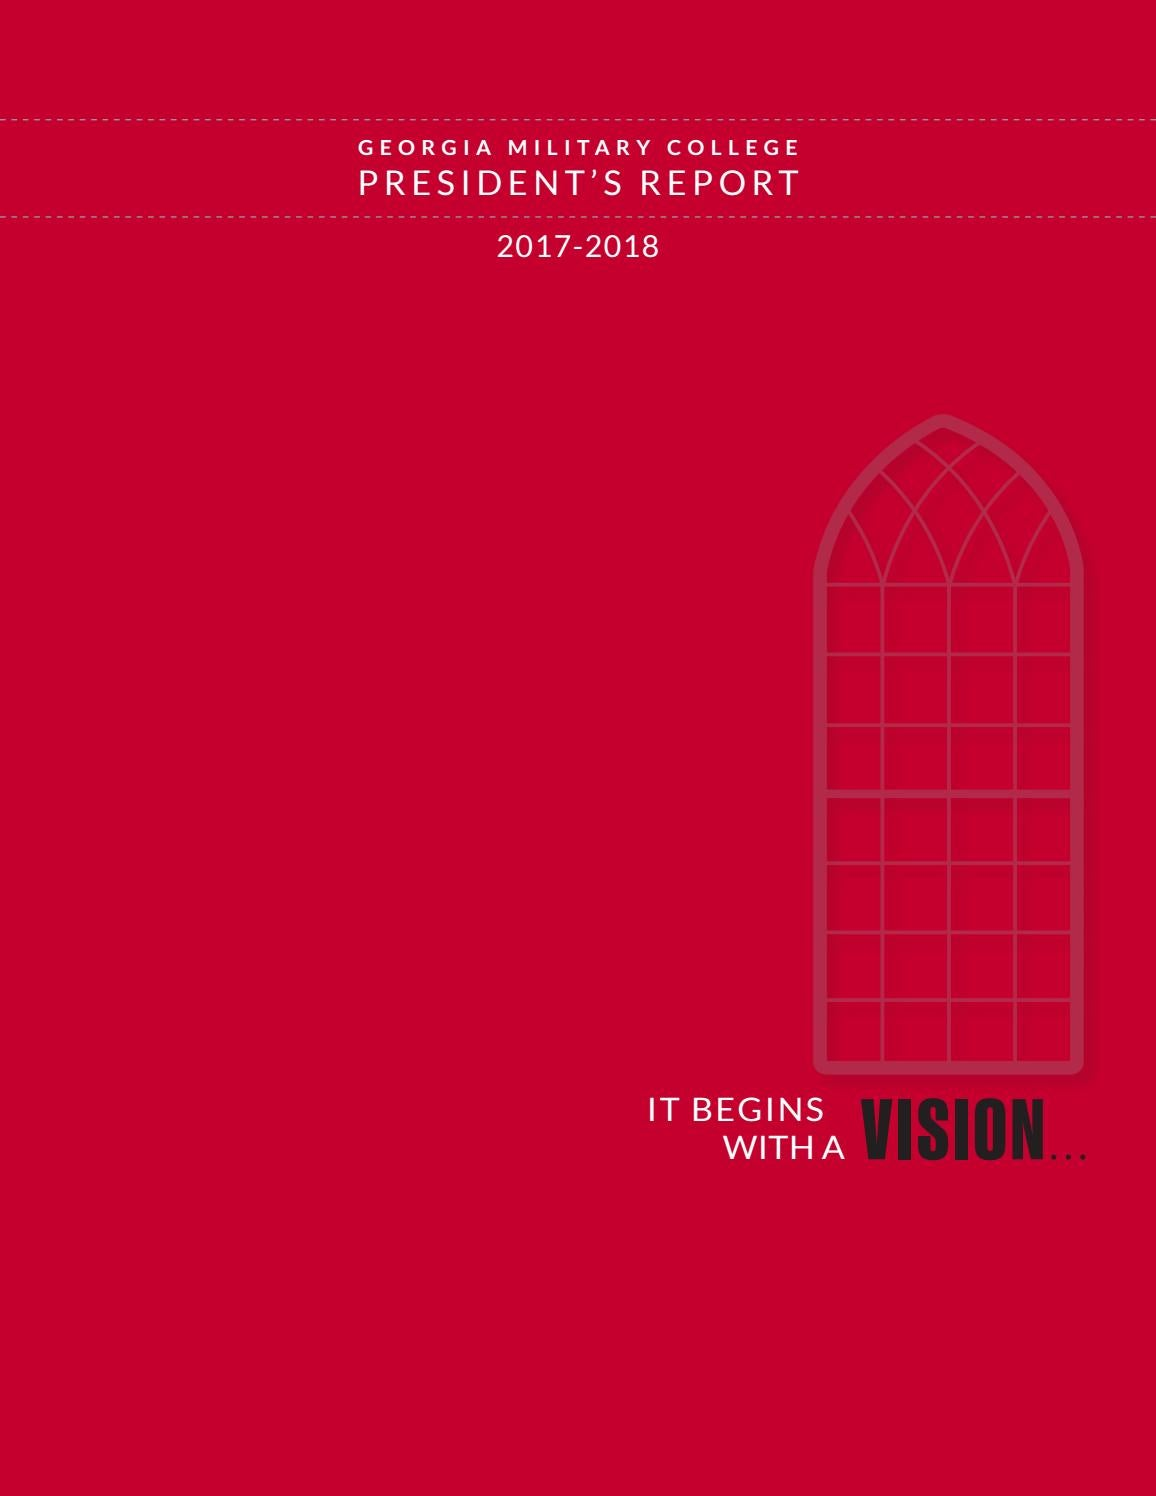 president s report 2017 2018 by georgia military college cadence issuu georgia military college